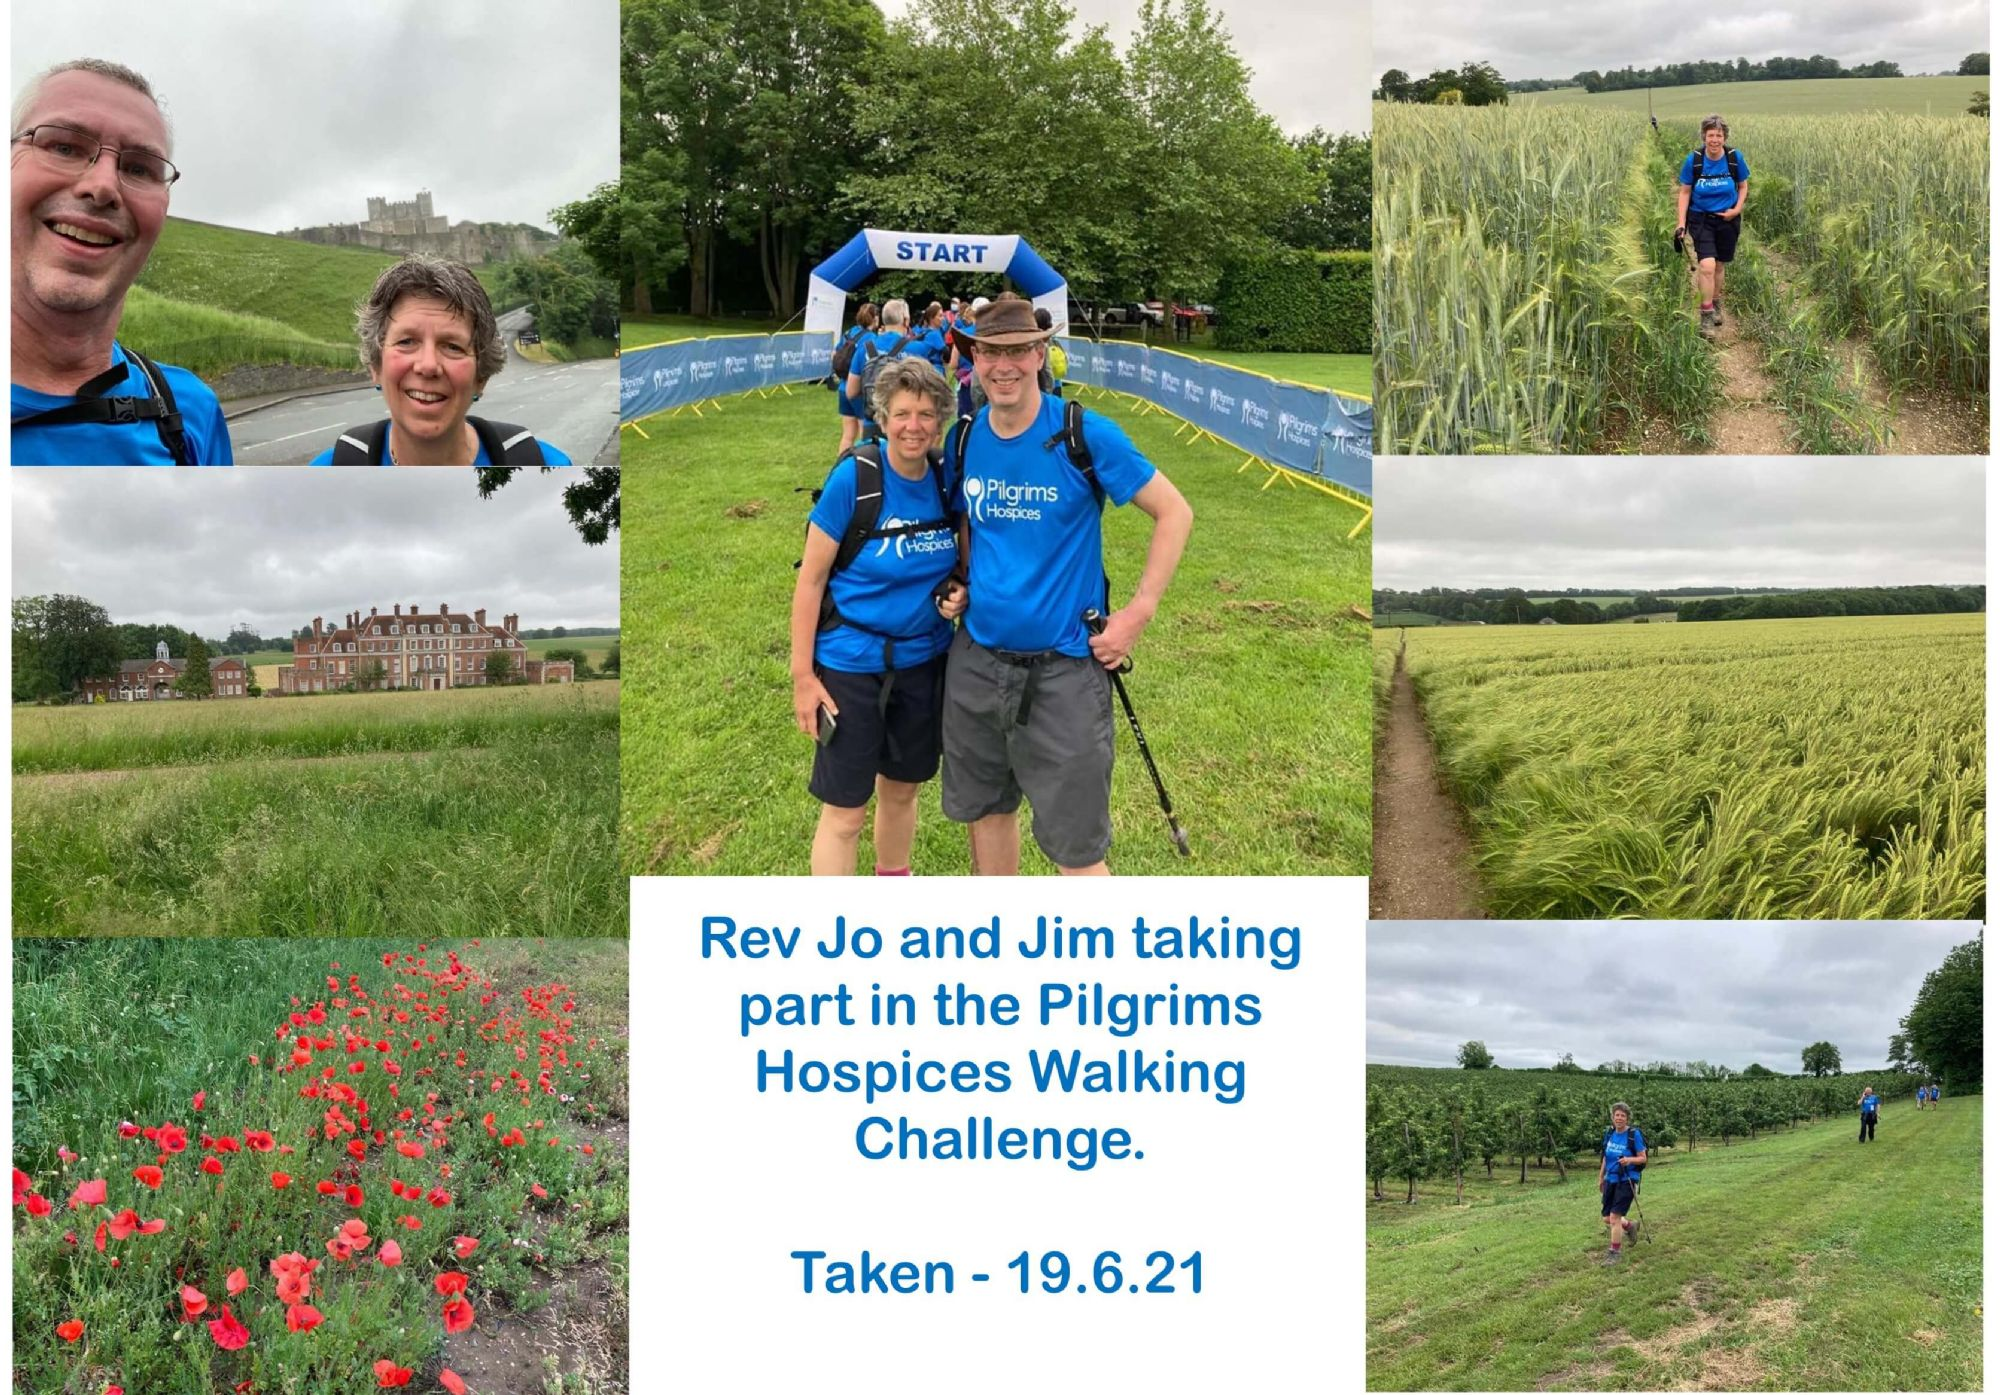 Rev Jo and Jim taking part in the Pilgrims Hospices Walking Challenge.